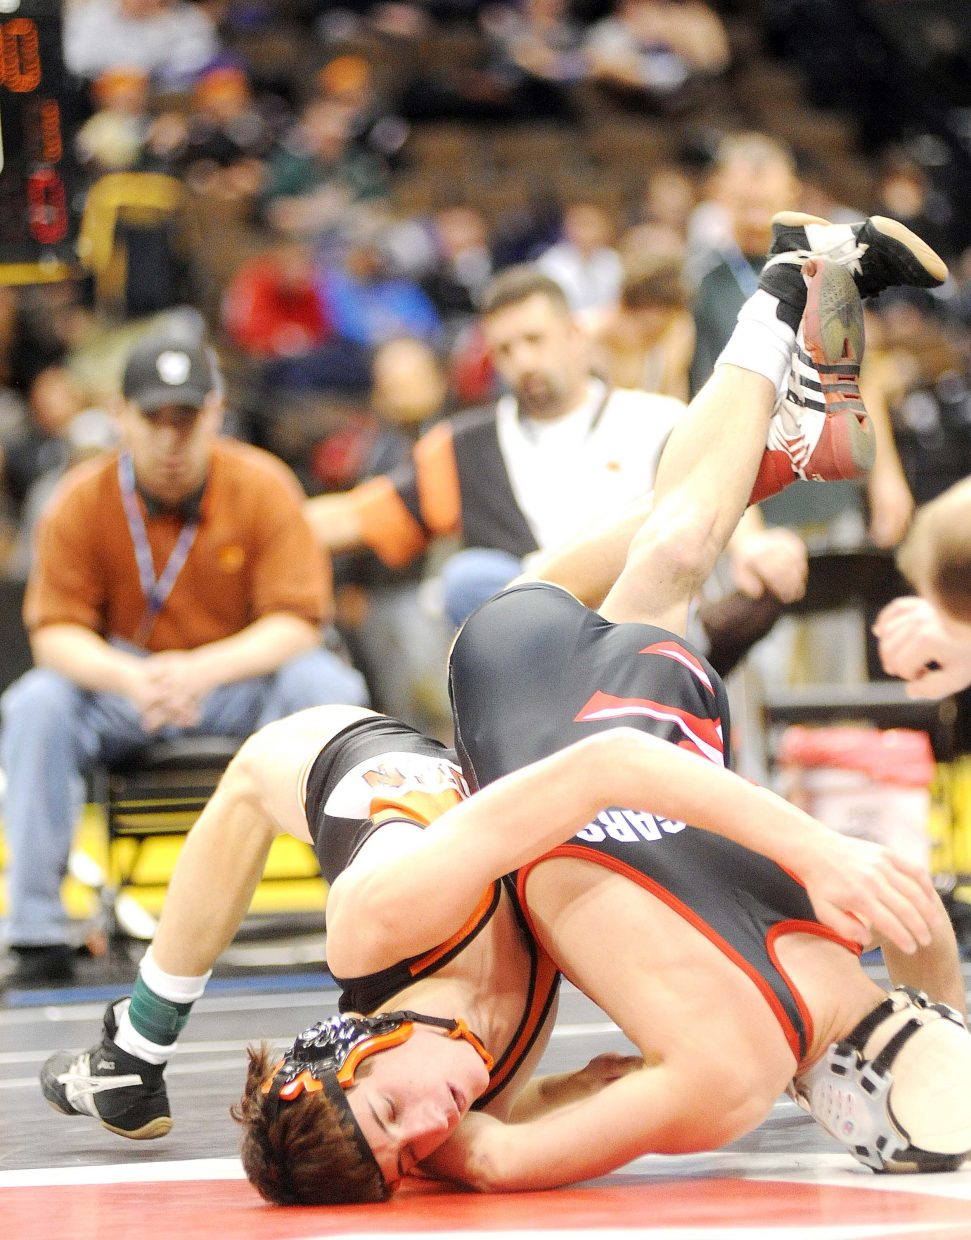 Hayden senior Scott Armbruster wrestles Thursday during the first round of the Class 2A state wrestling tournament in Denver.